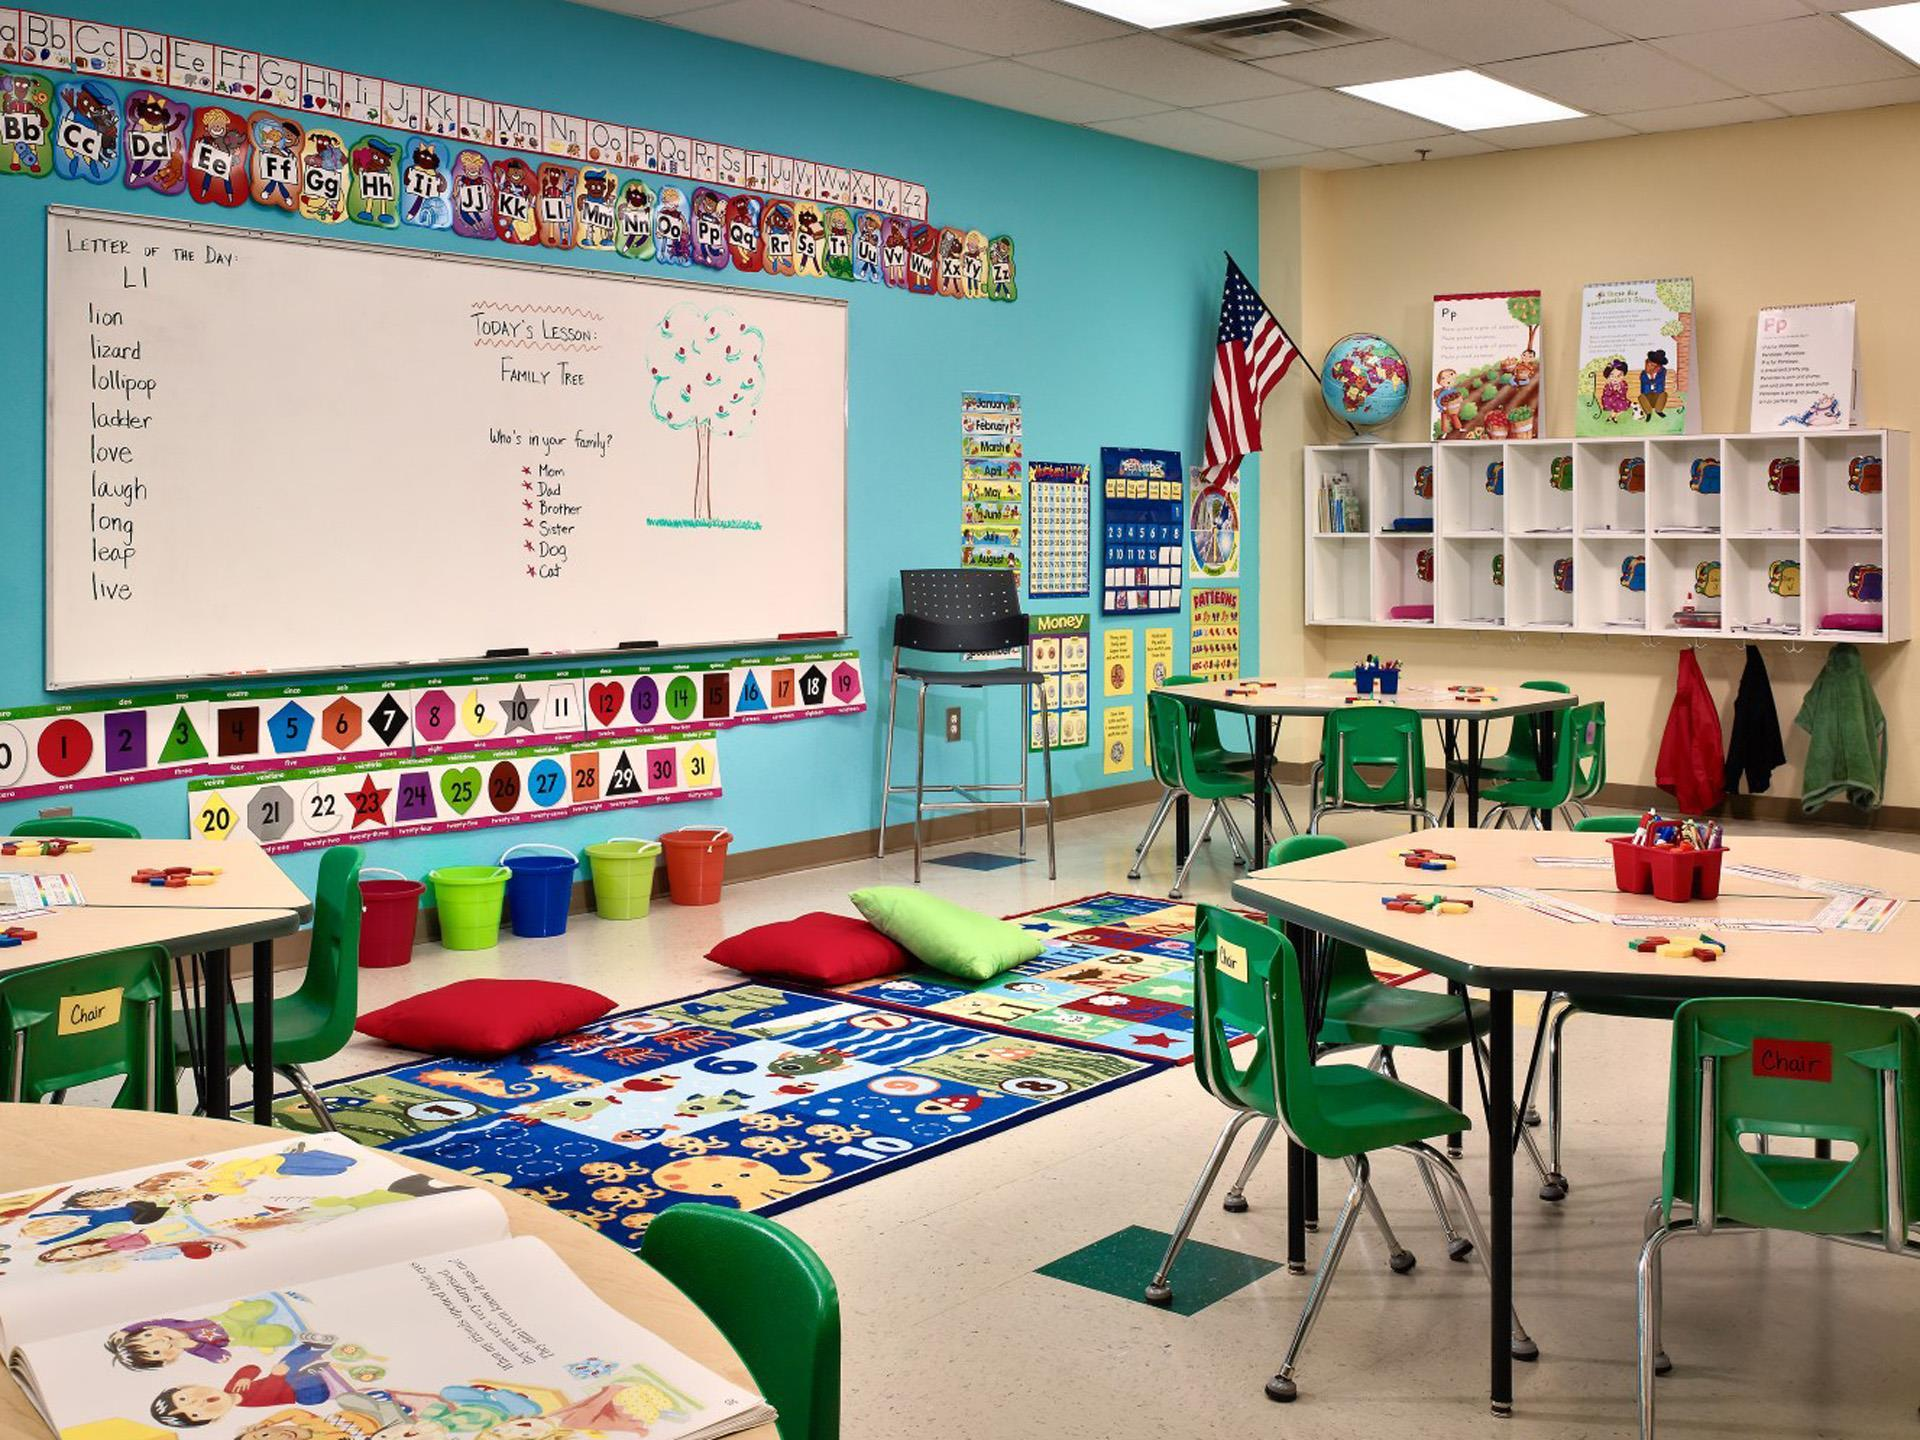 Classroom for children set up with white board and educational decorations.